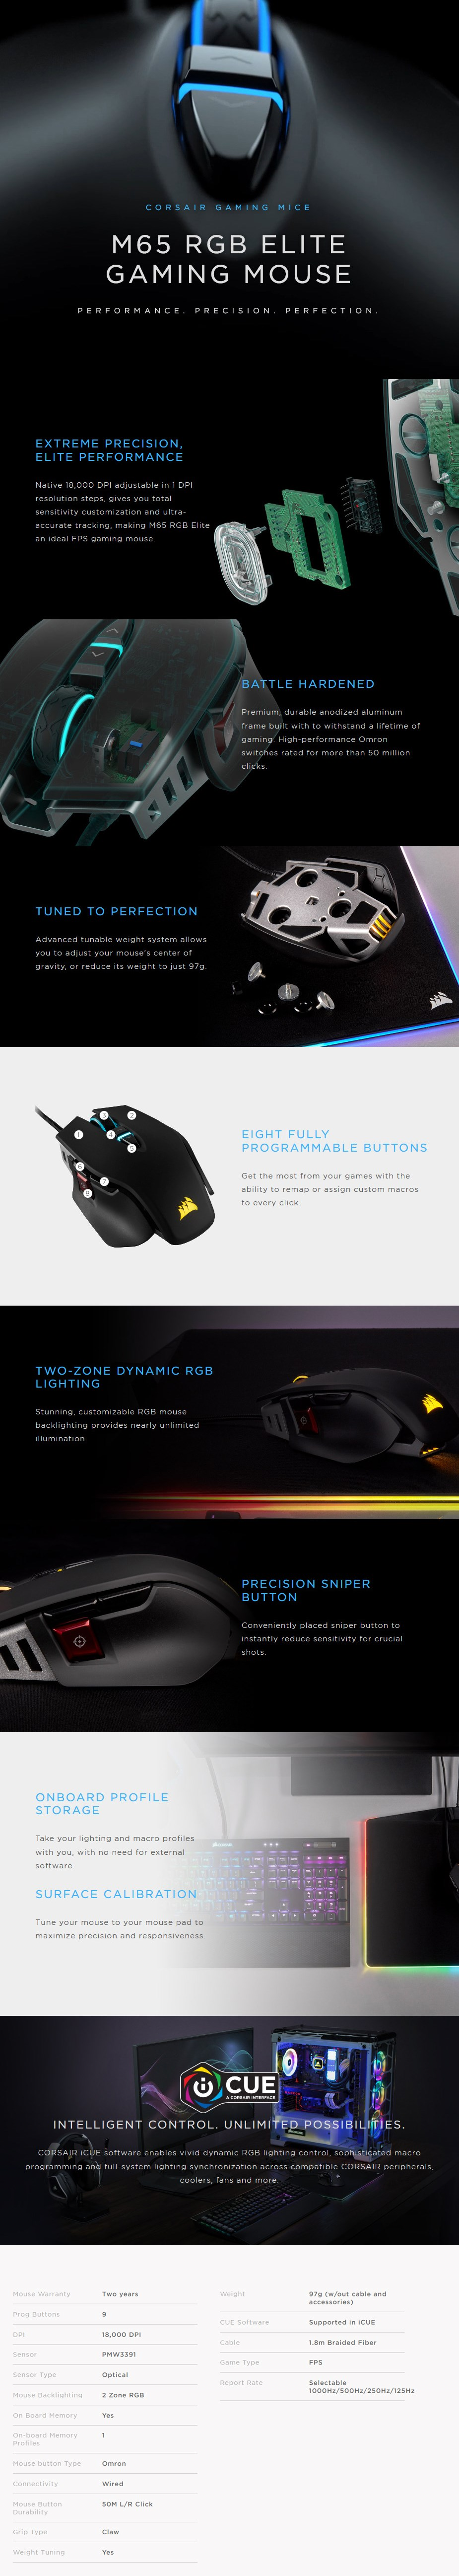 Corsair Gaming M65 RGB ELITE FPS Optical Gaming Mouse - Black - Desktop Overview 1